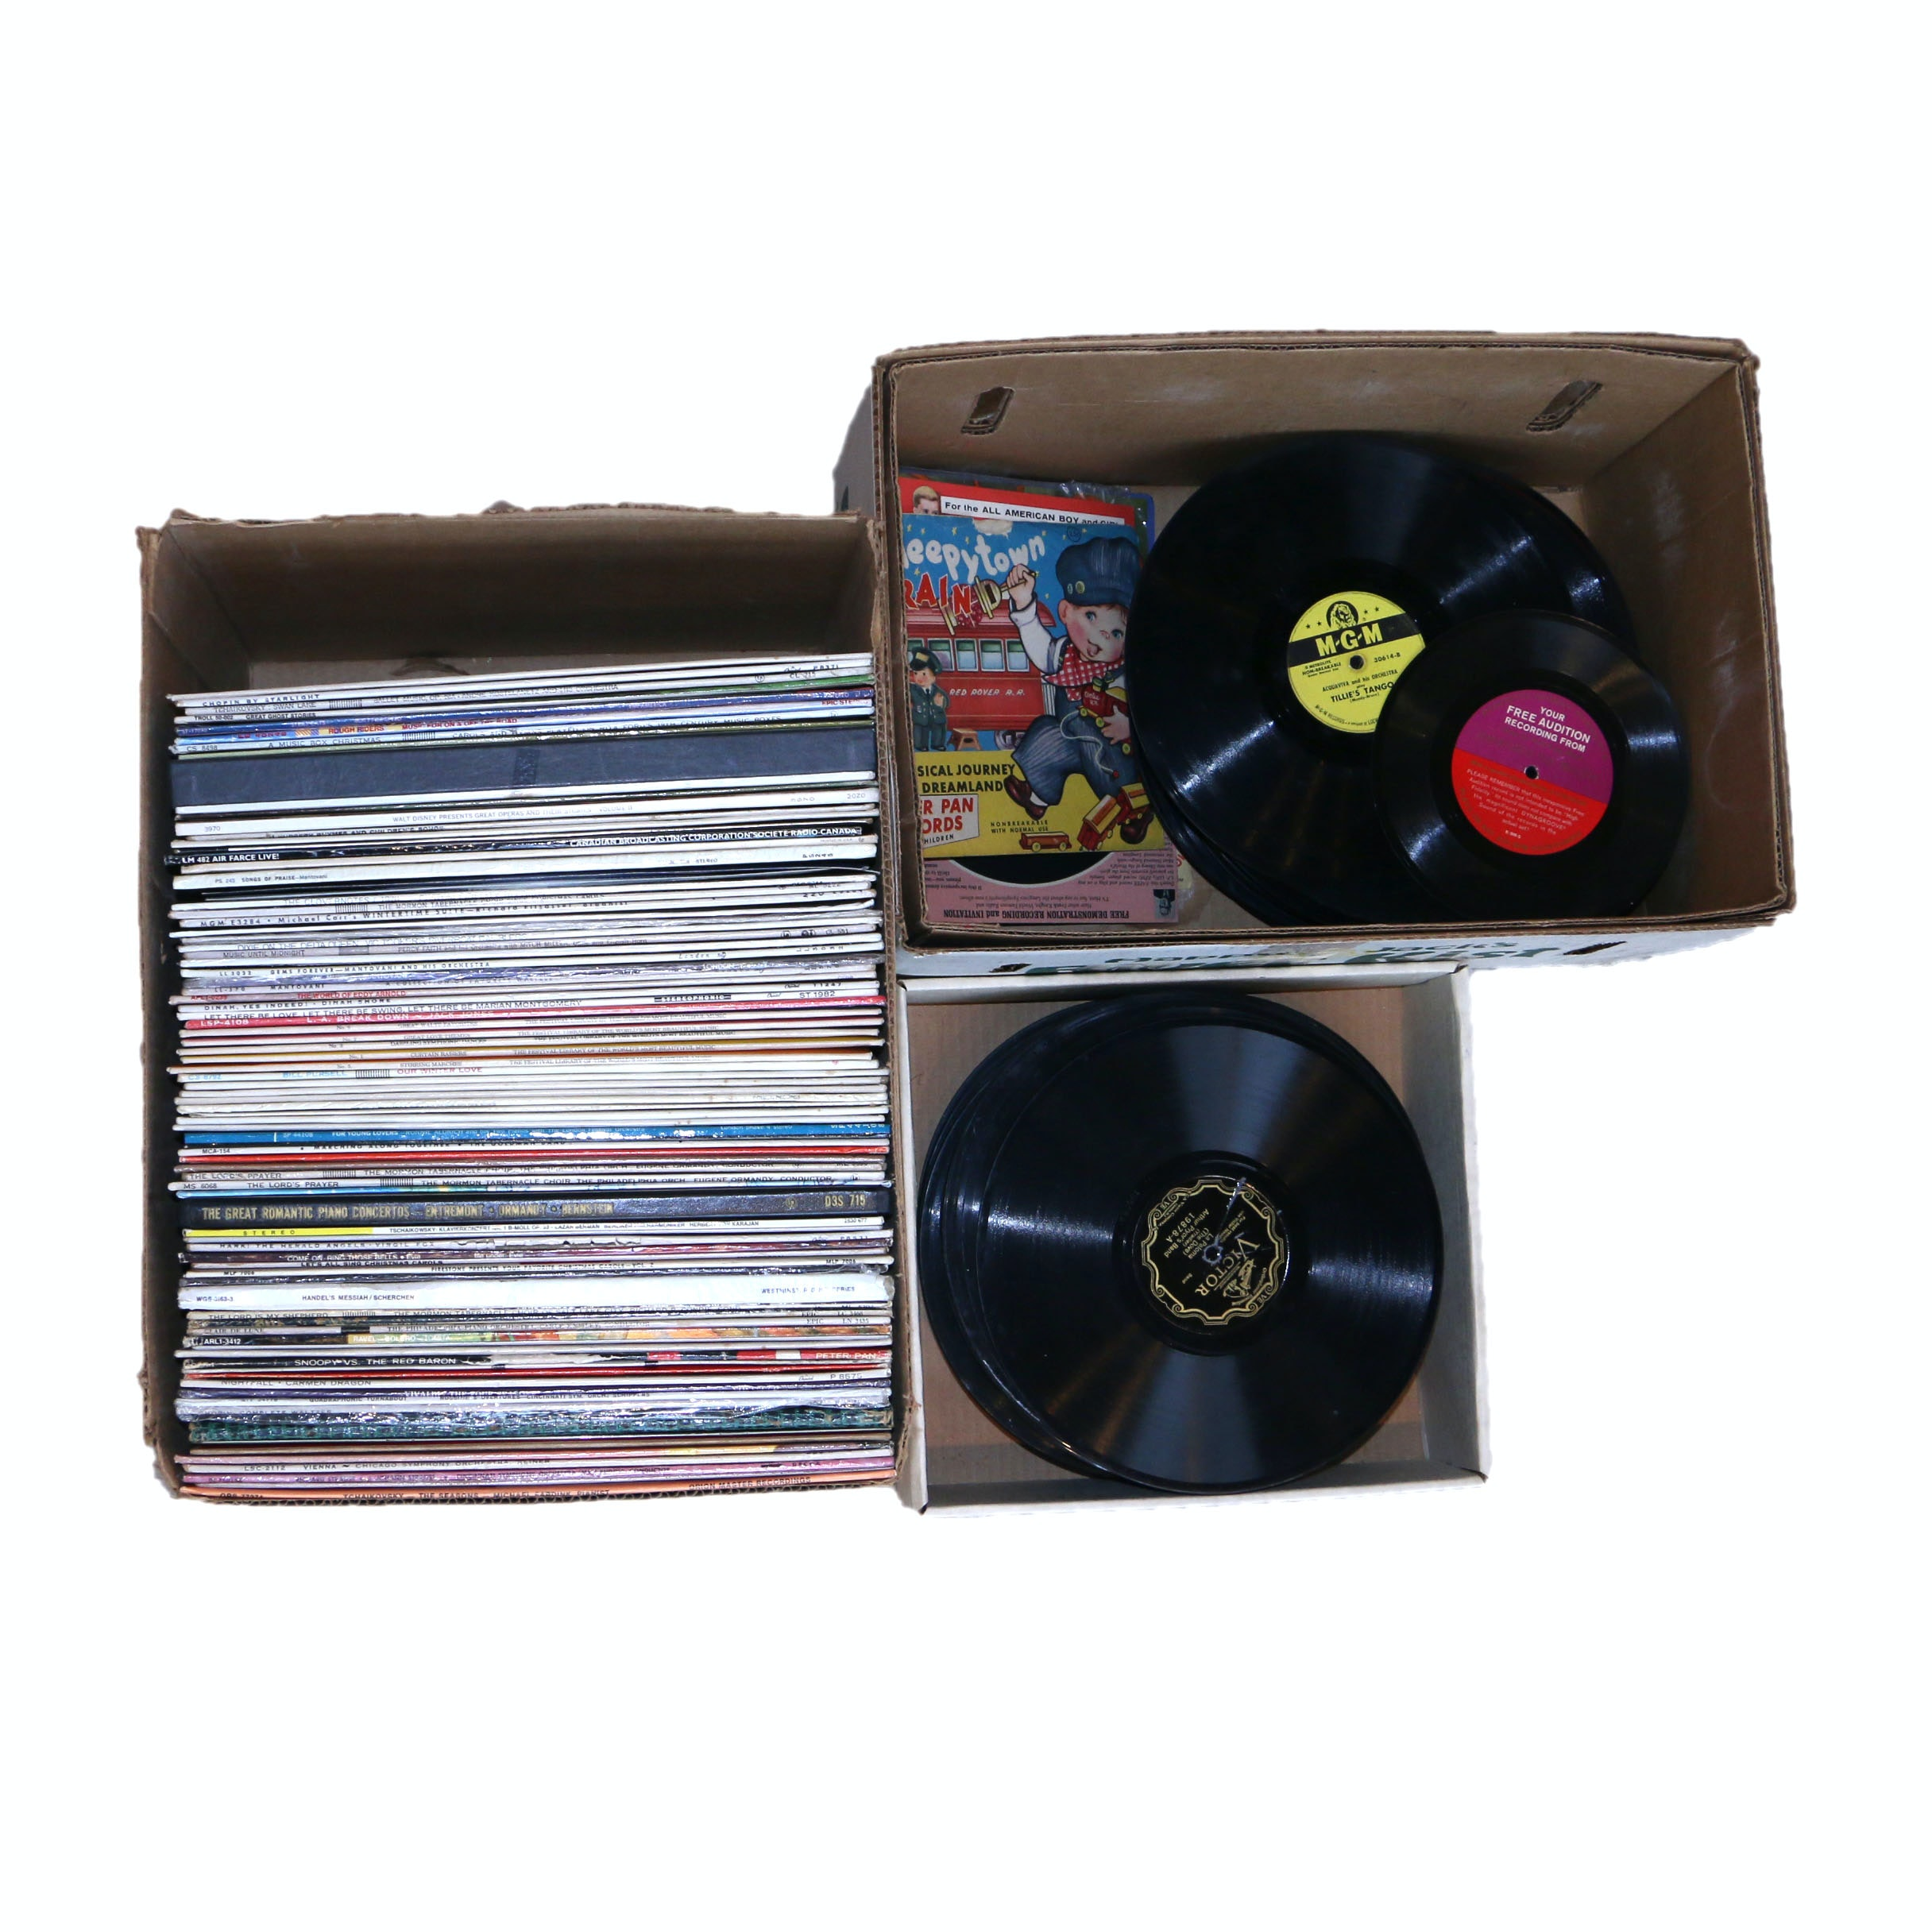 "Large Assortment of Vintage Vinyl Including 12"" and 78's"